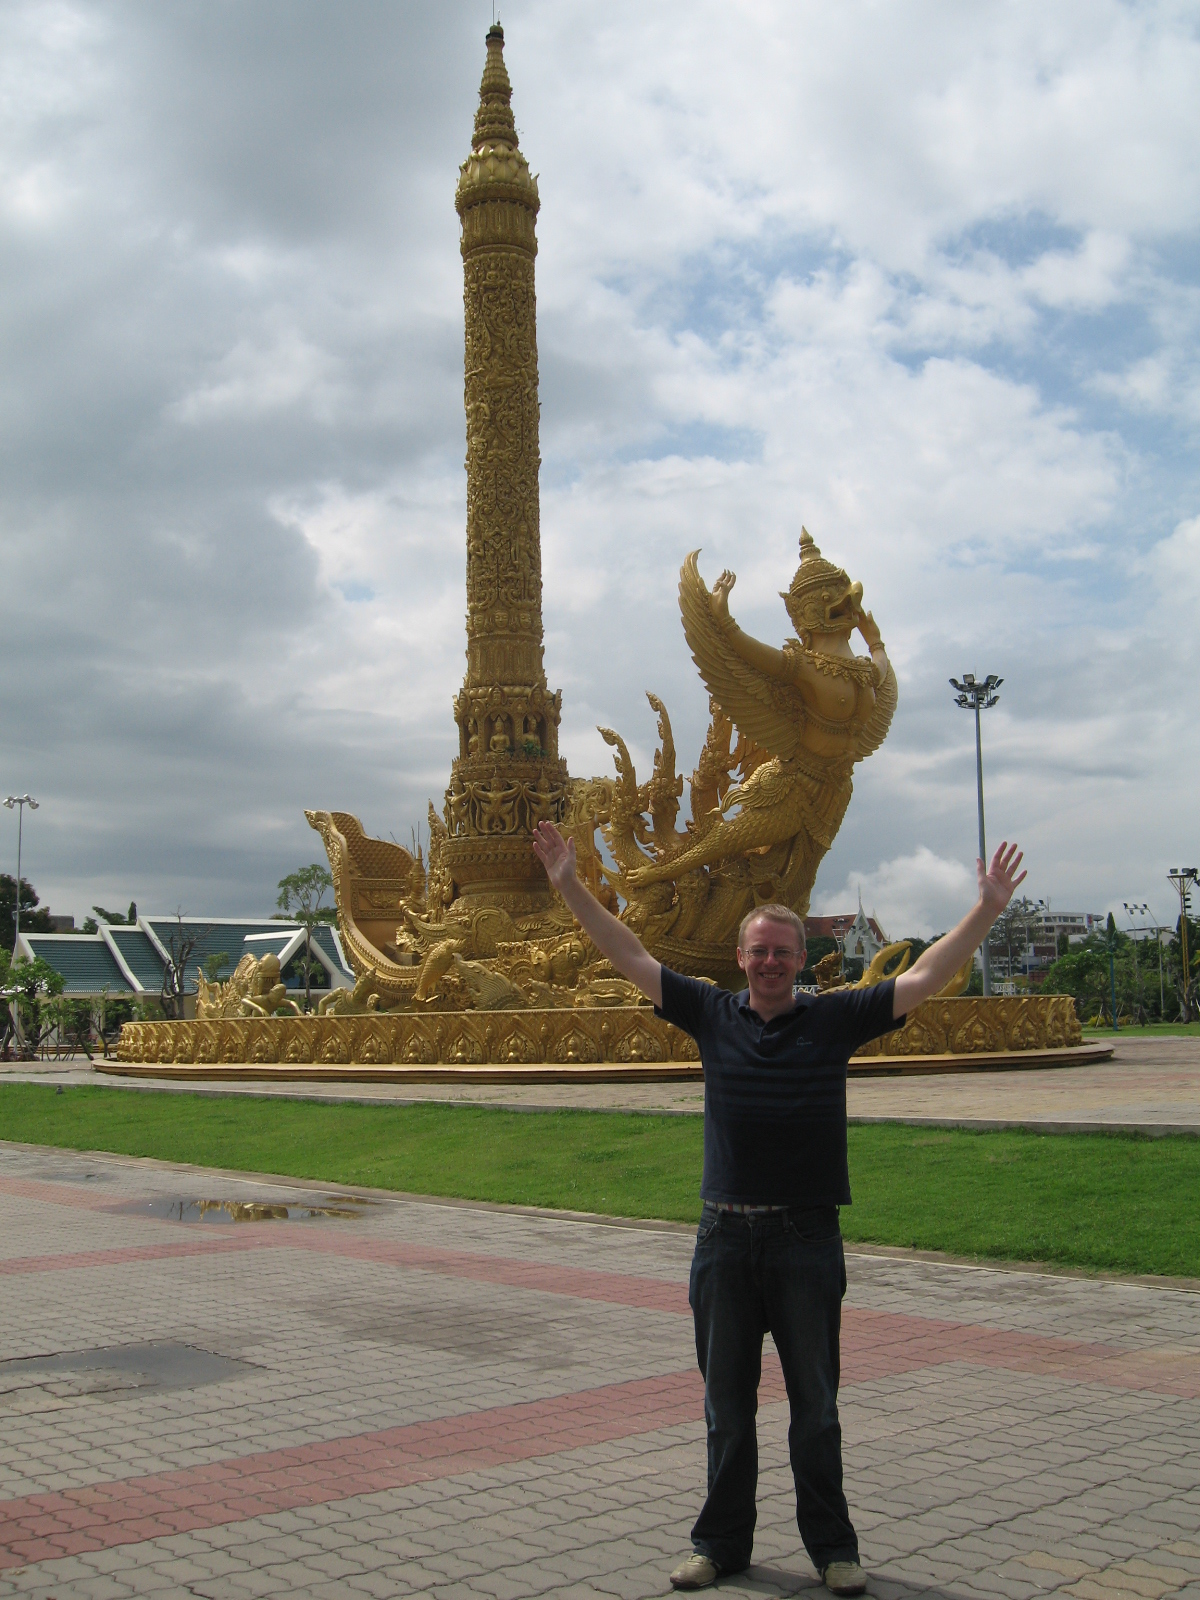 Jeab's visit to the Candle Festival in Northern Thailand